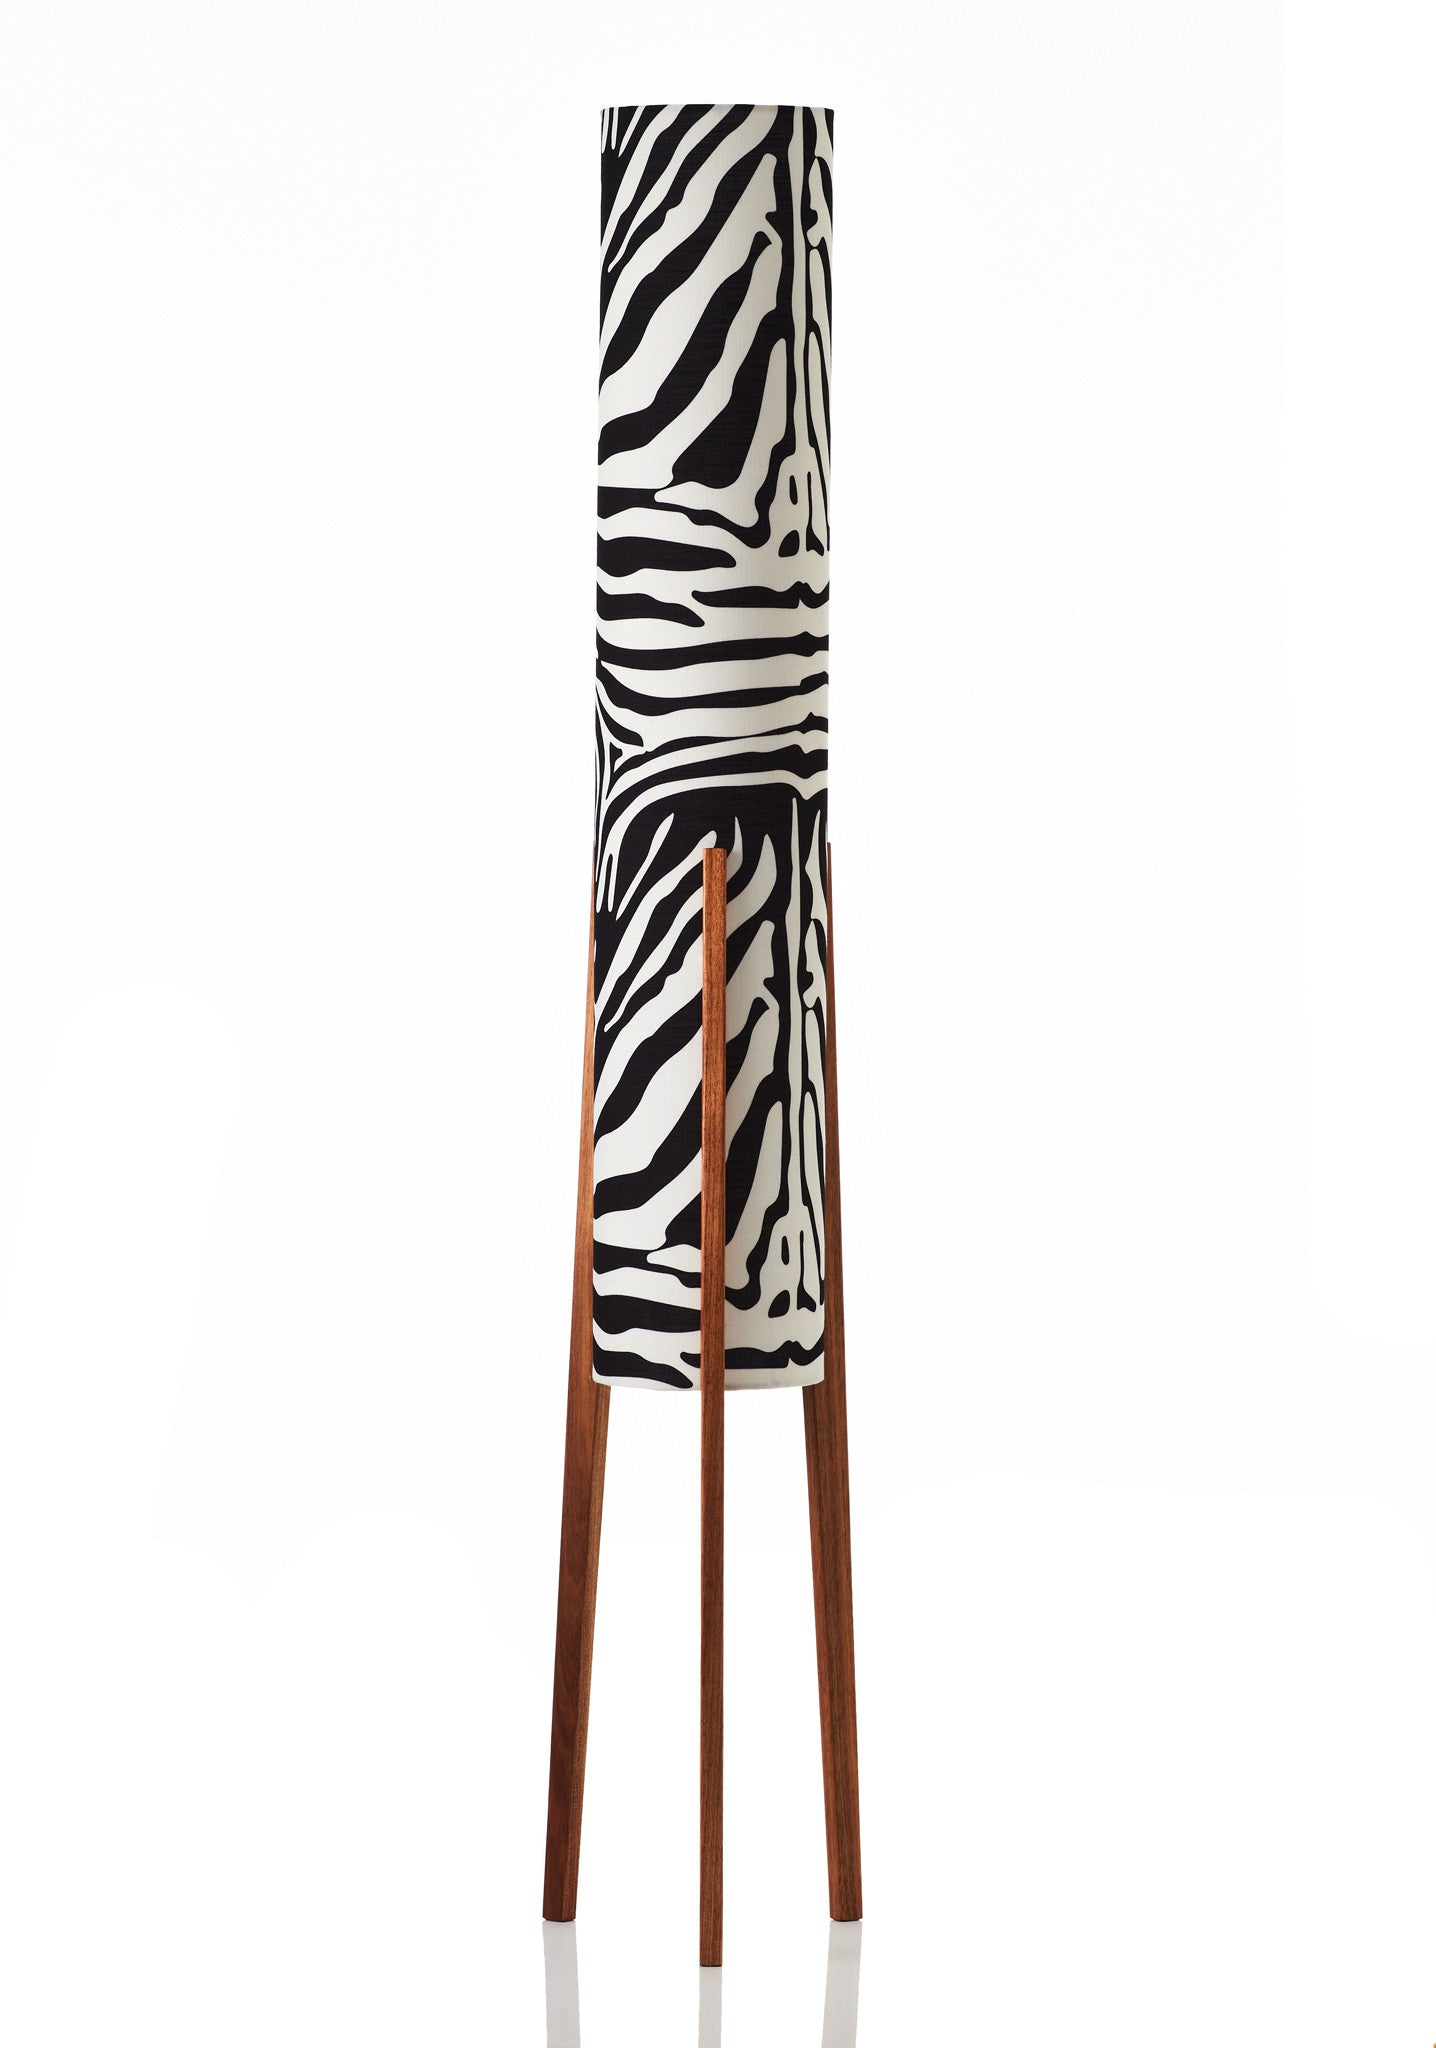 Rocket Floor Lamp Large - Wild Dagger Plains